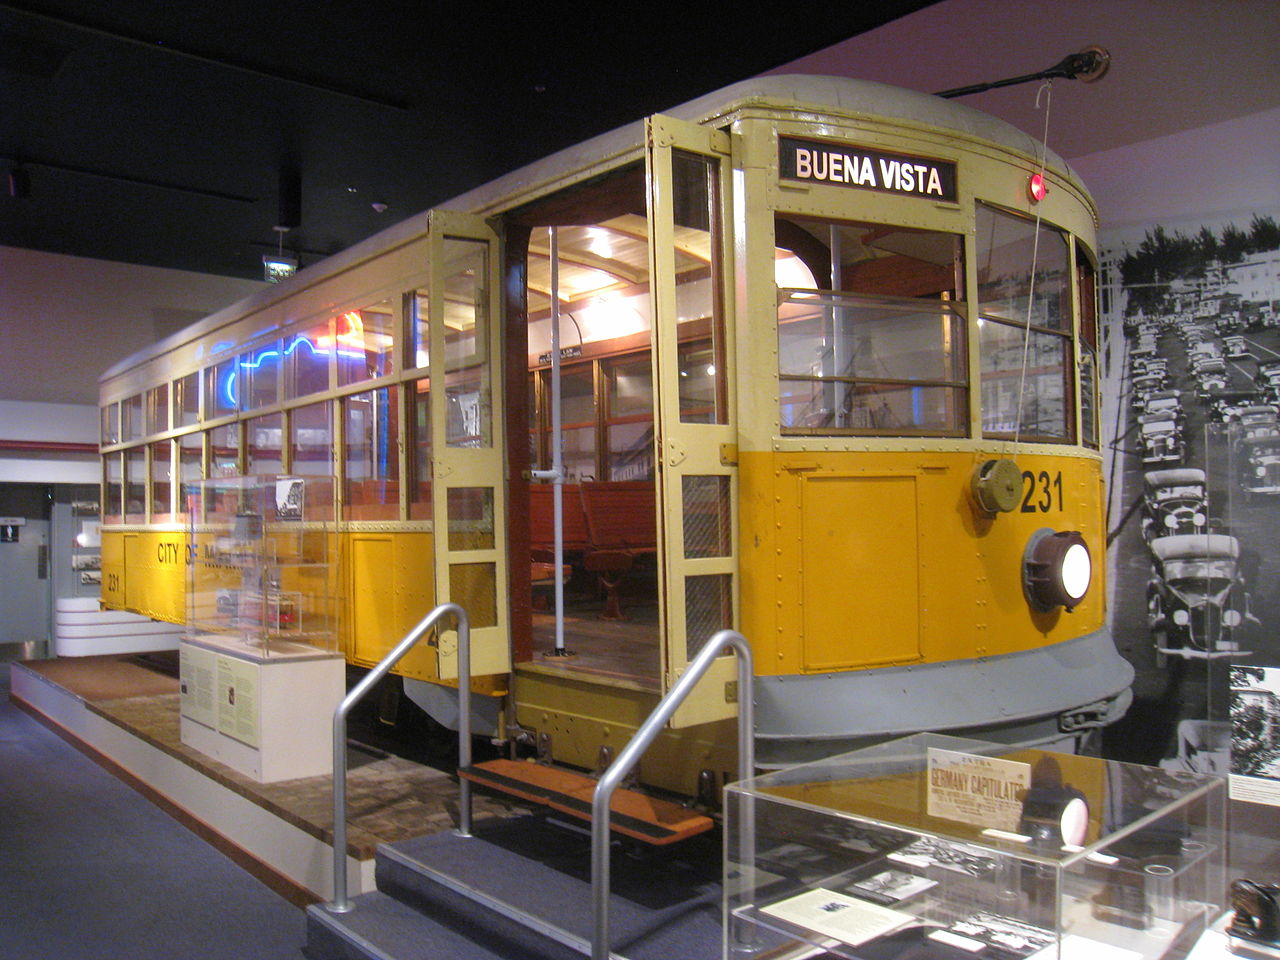 Former tram car from Miami, Florida exhibited at HistoryMiami museum. Discover 2 more amazing museums to visit in Miami from the article. #miami #usa #miamimuseum